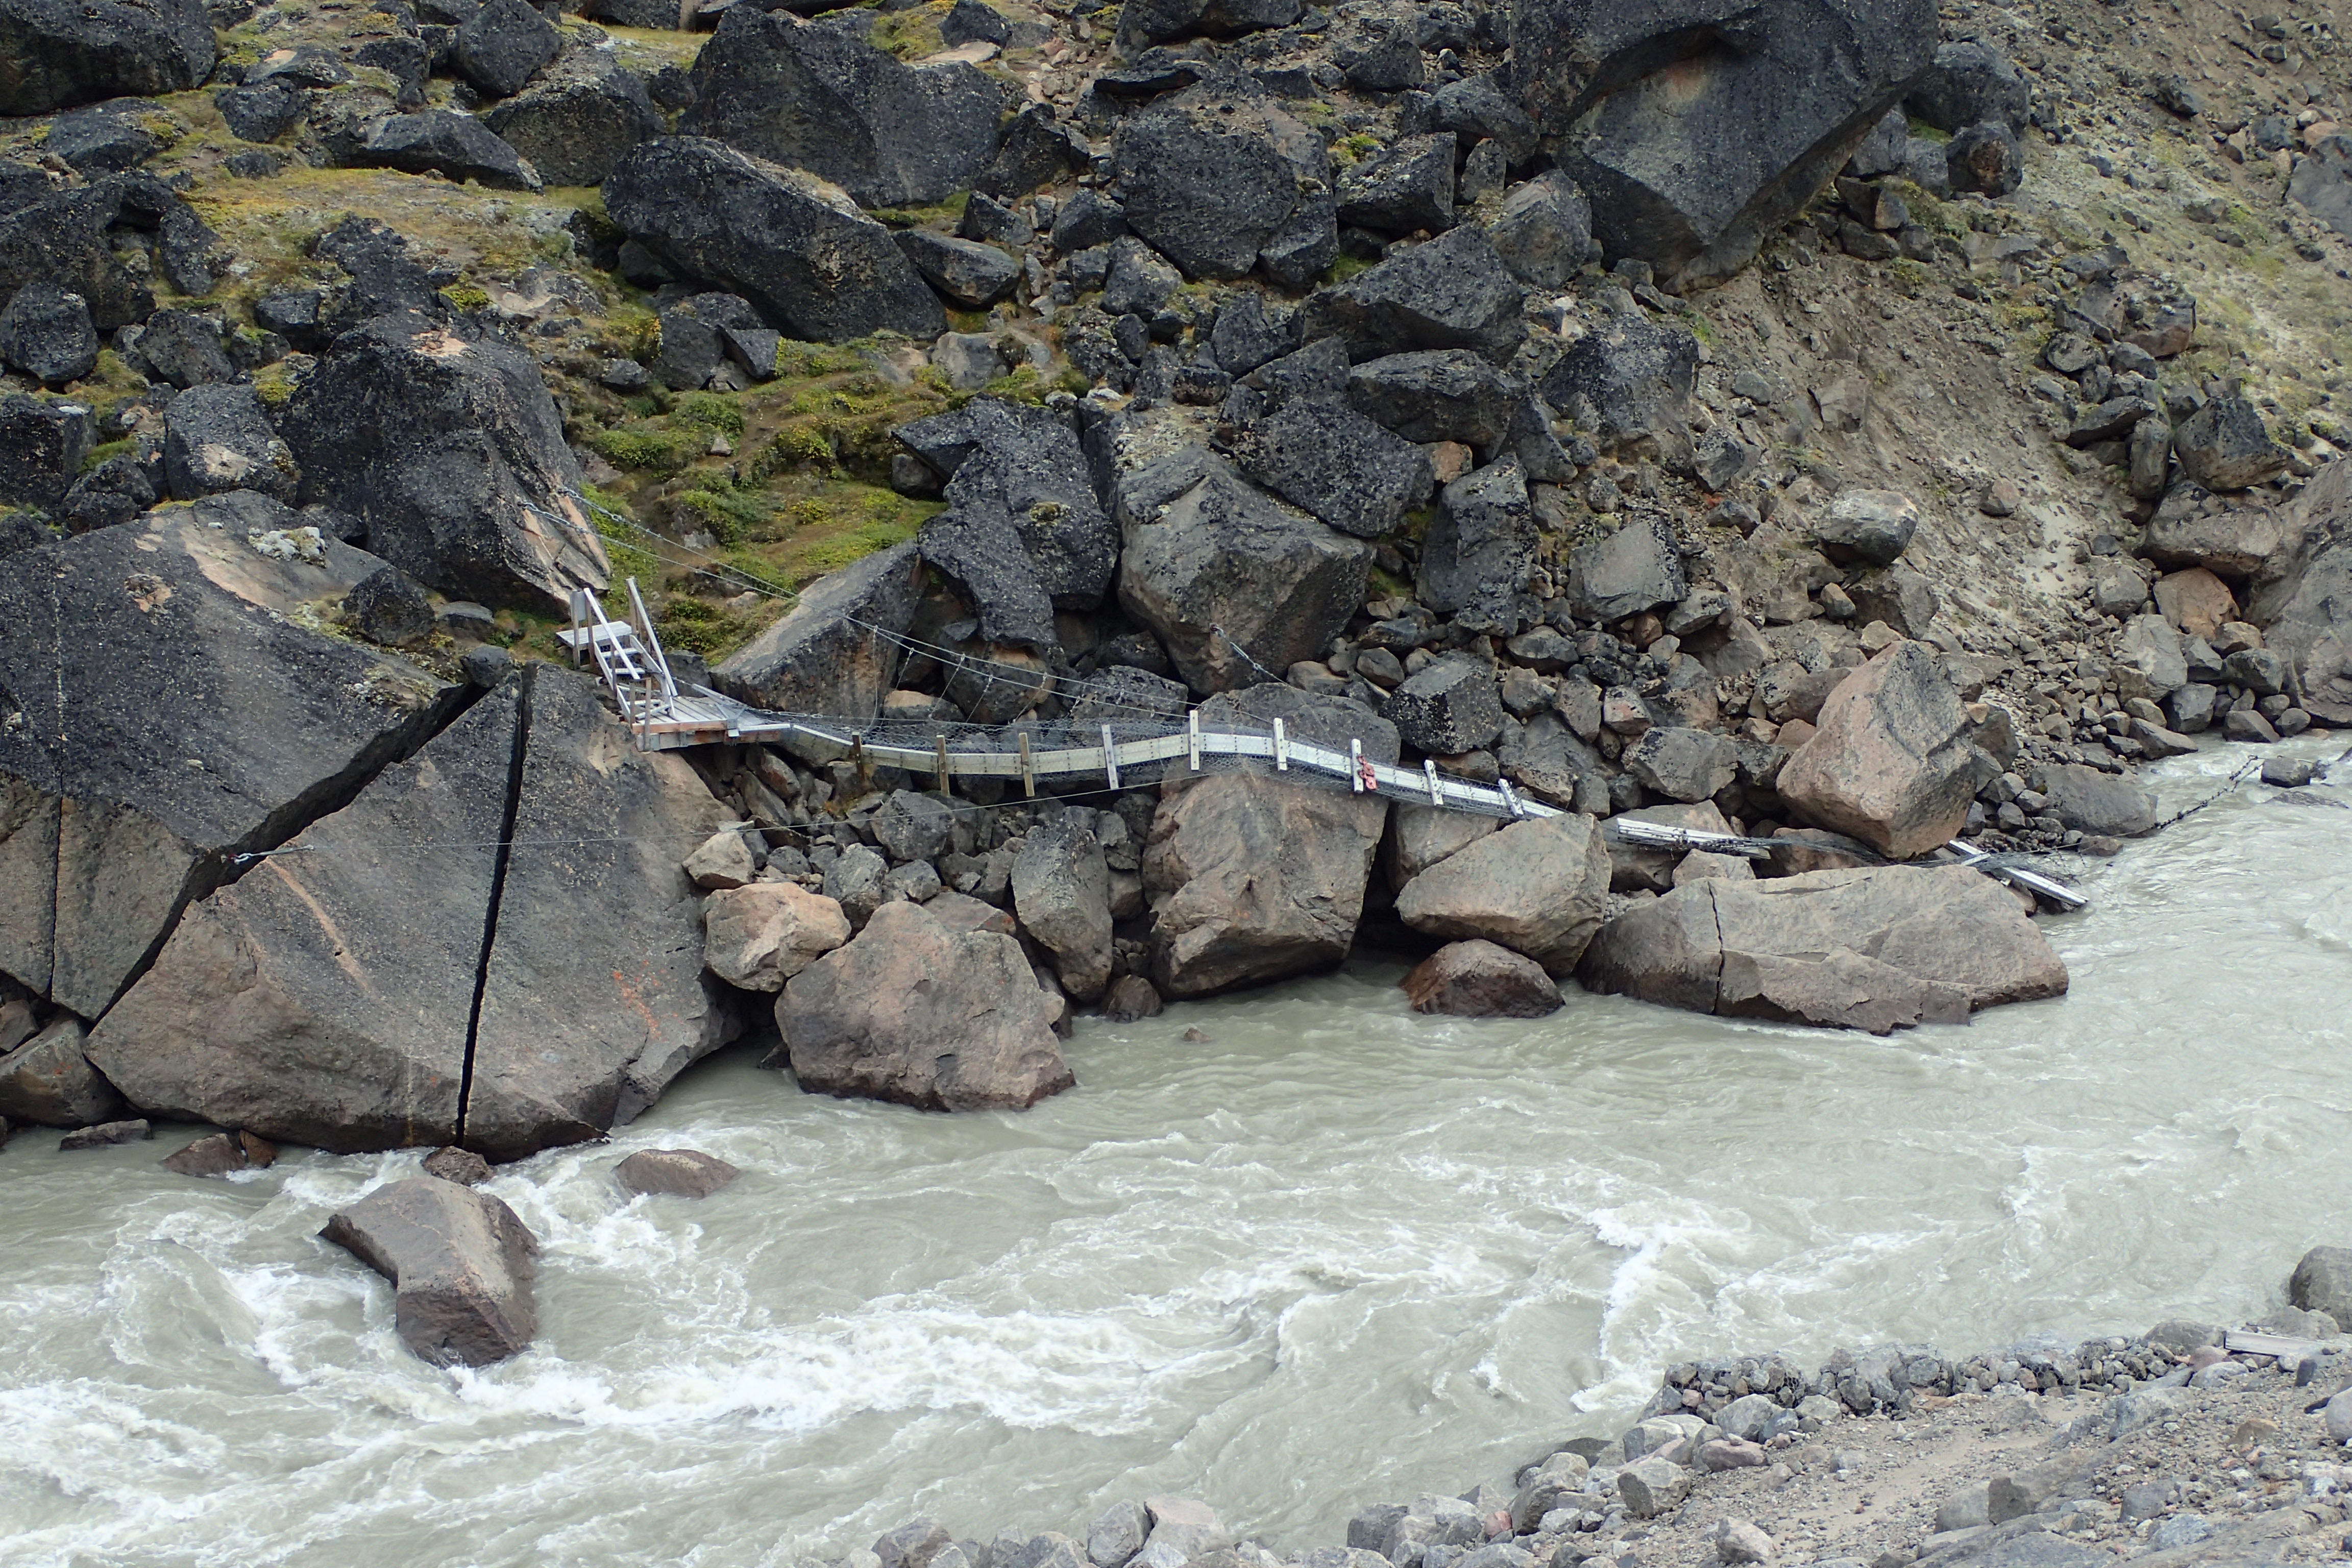 Remains of the Windy Lake bridge over the Weasel River, which washed out in a flood in 2008.